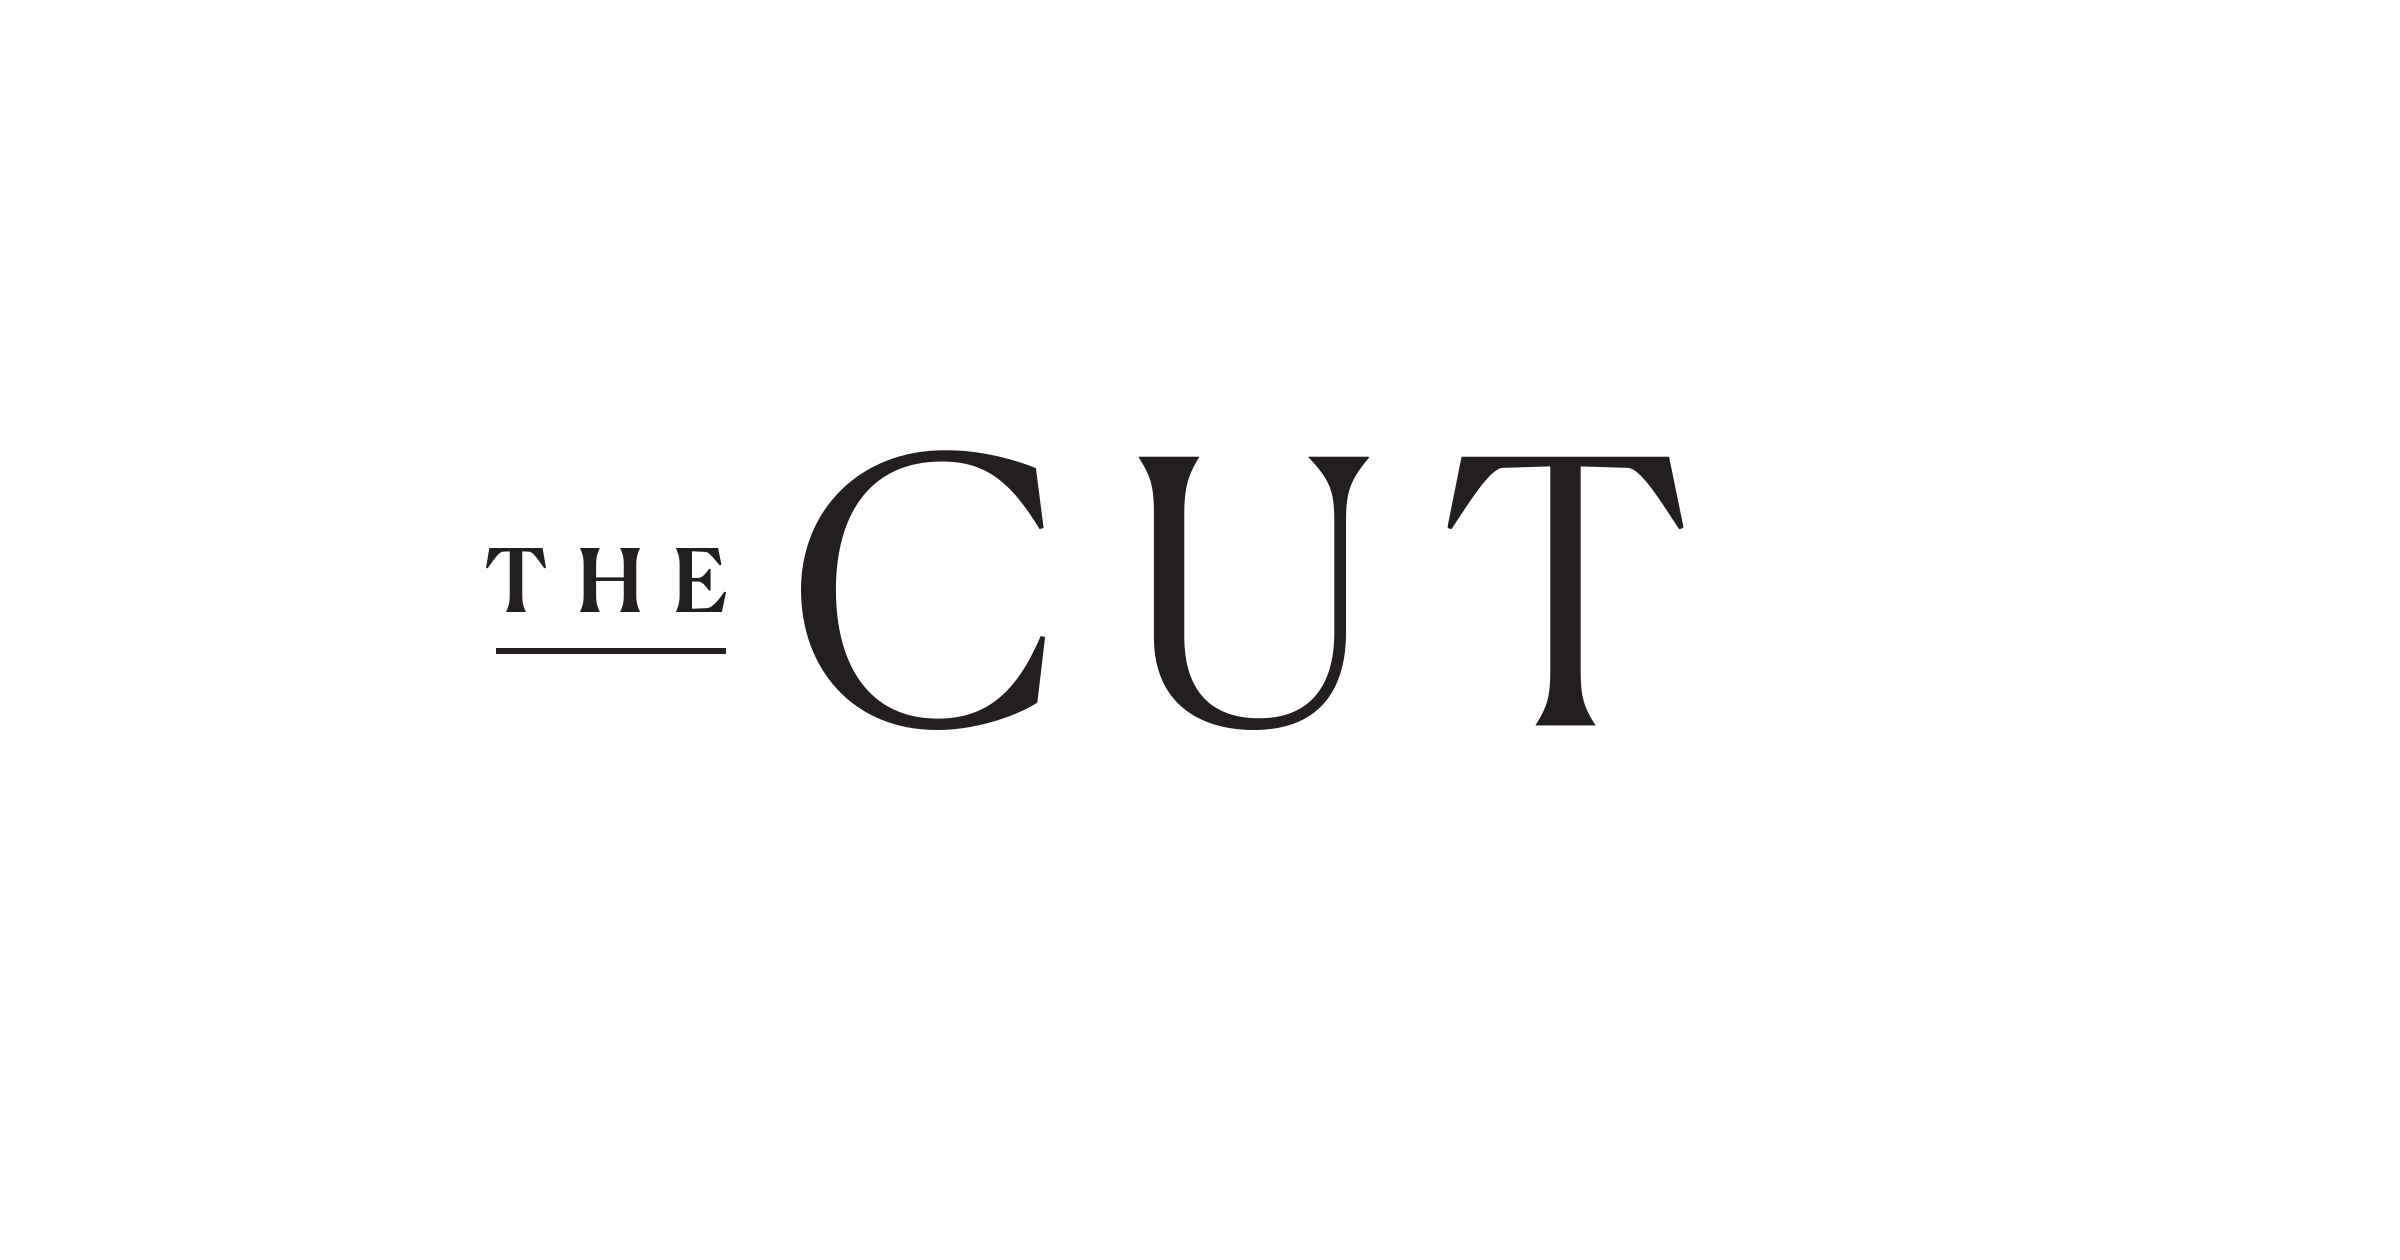 The Cut - To tell the truth